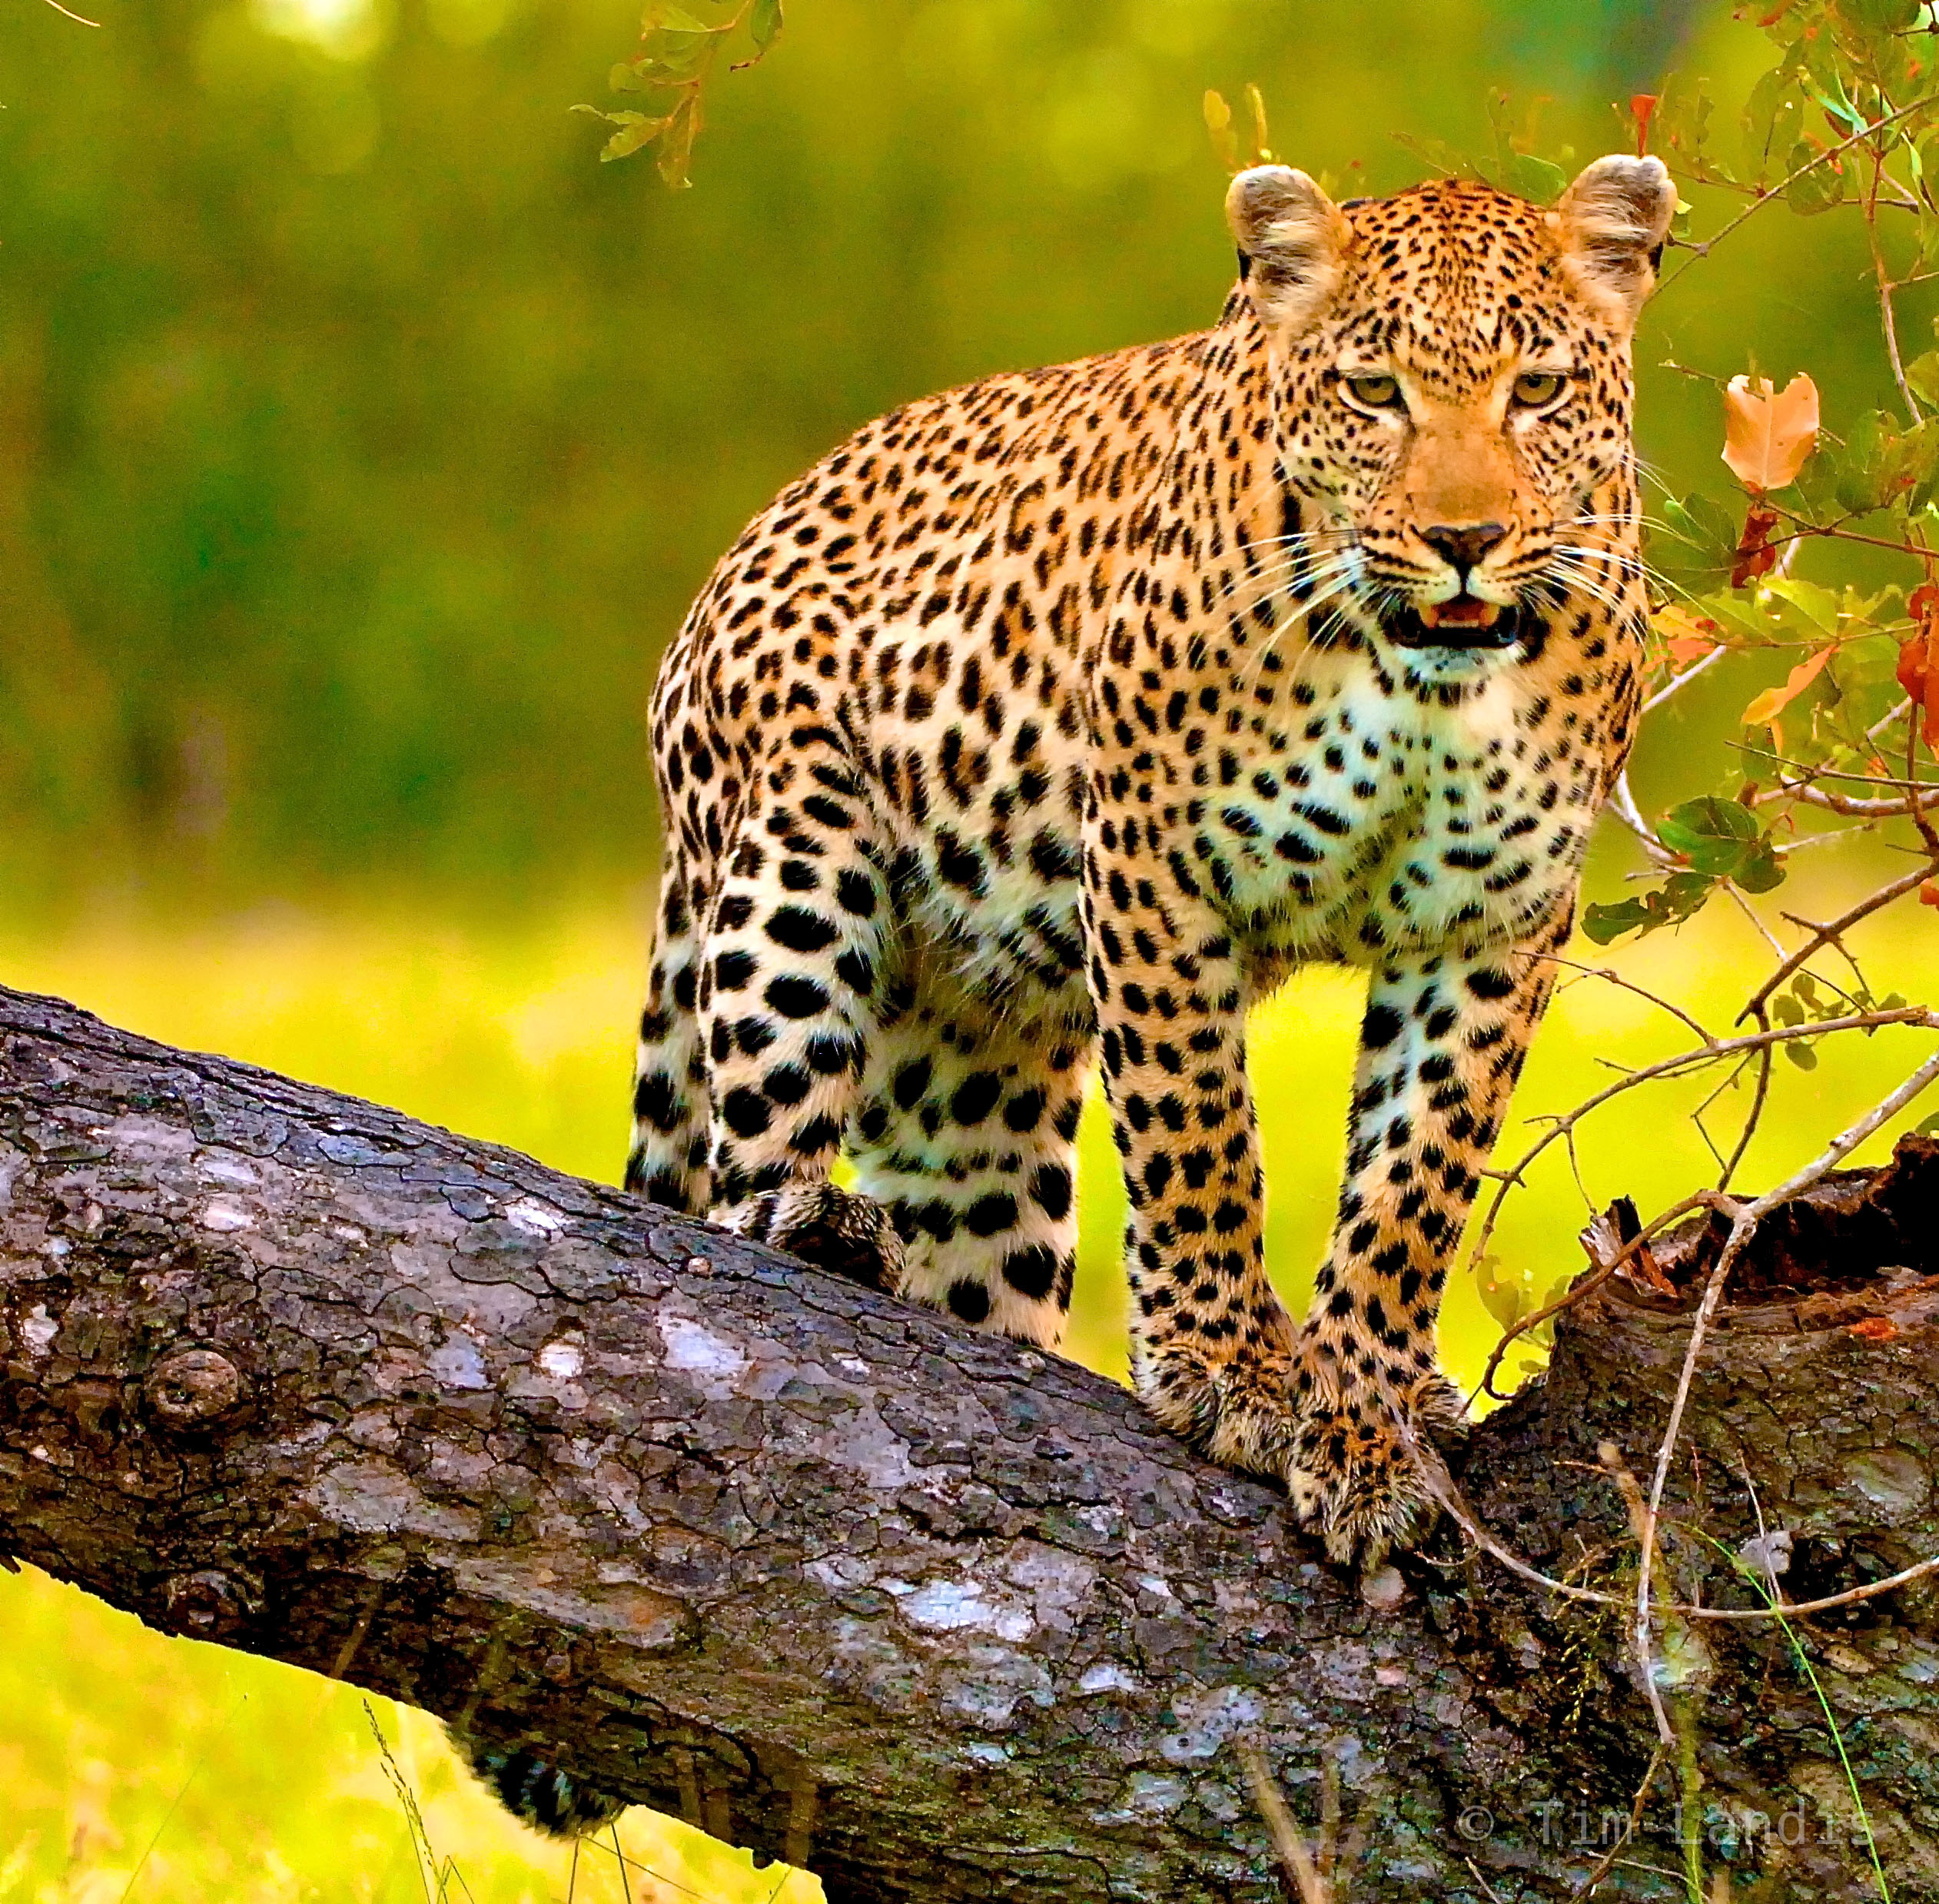 South Africa, leopard on a log, leopards, photo